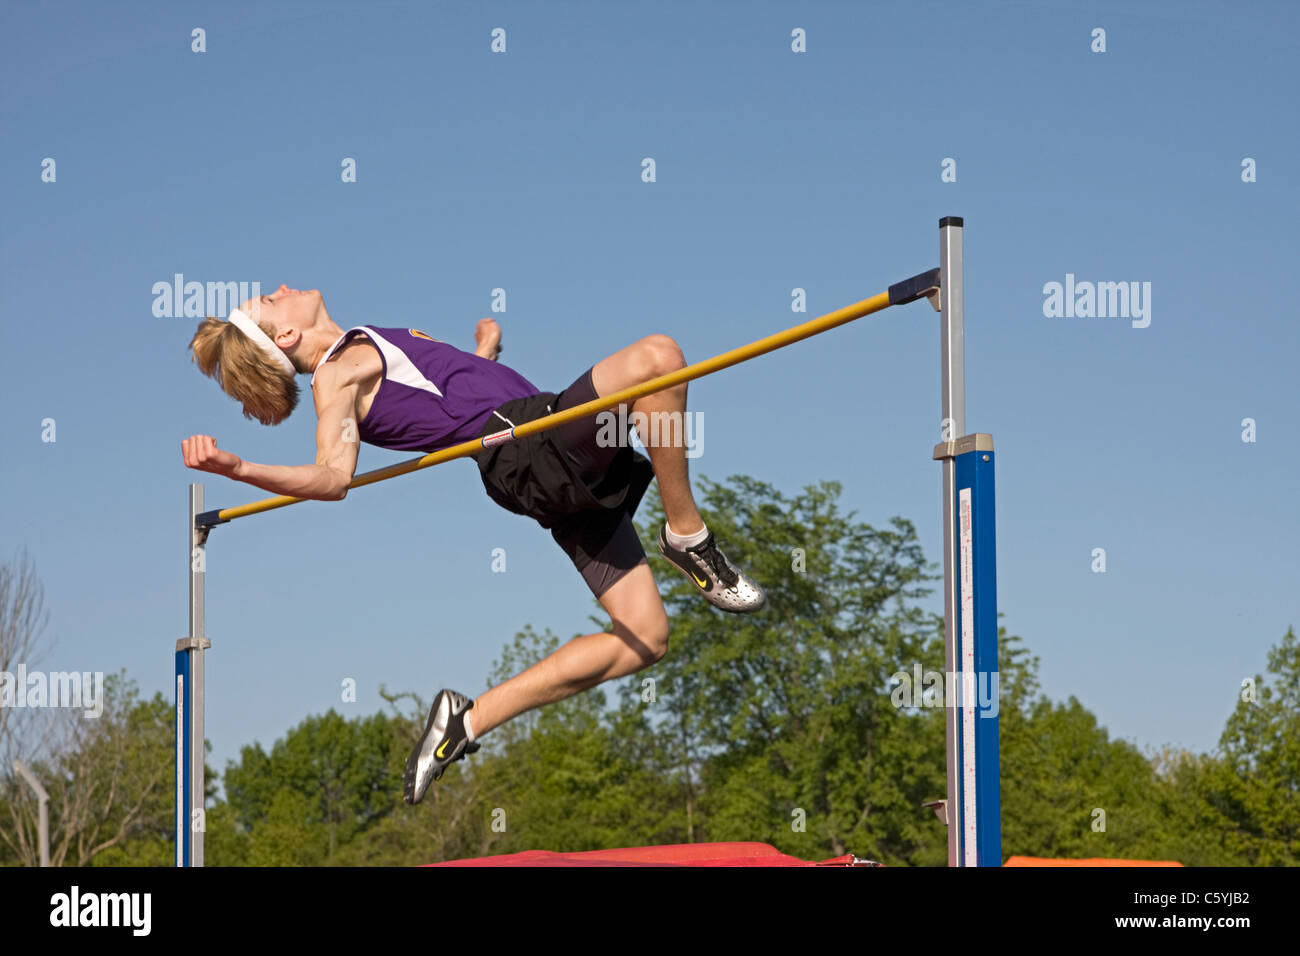 A high school boy uses his body language to wish himself over the high jump bar at a sectional track meet in Wisconsin. - Stock Image